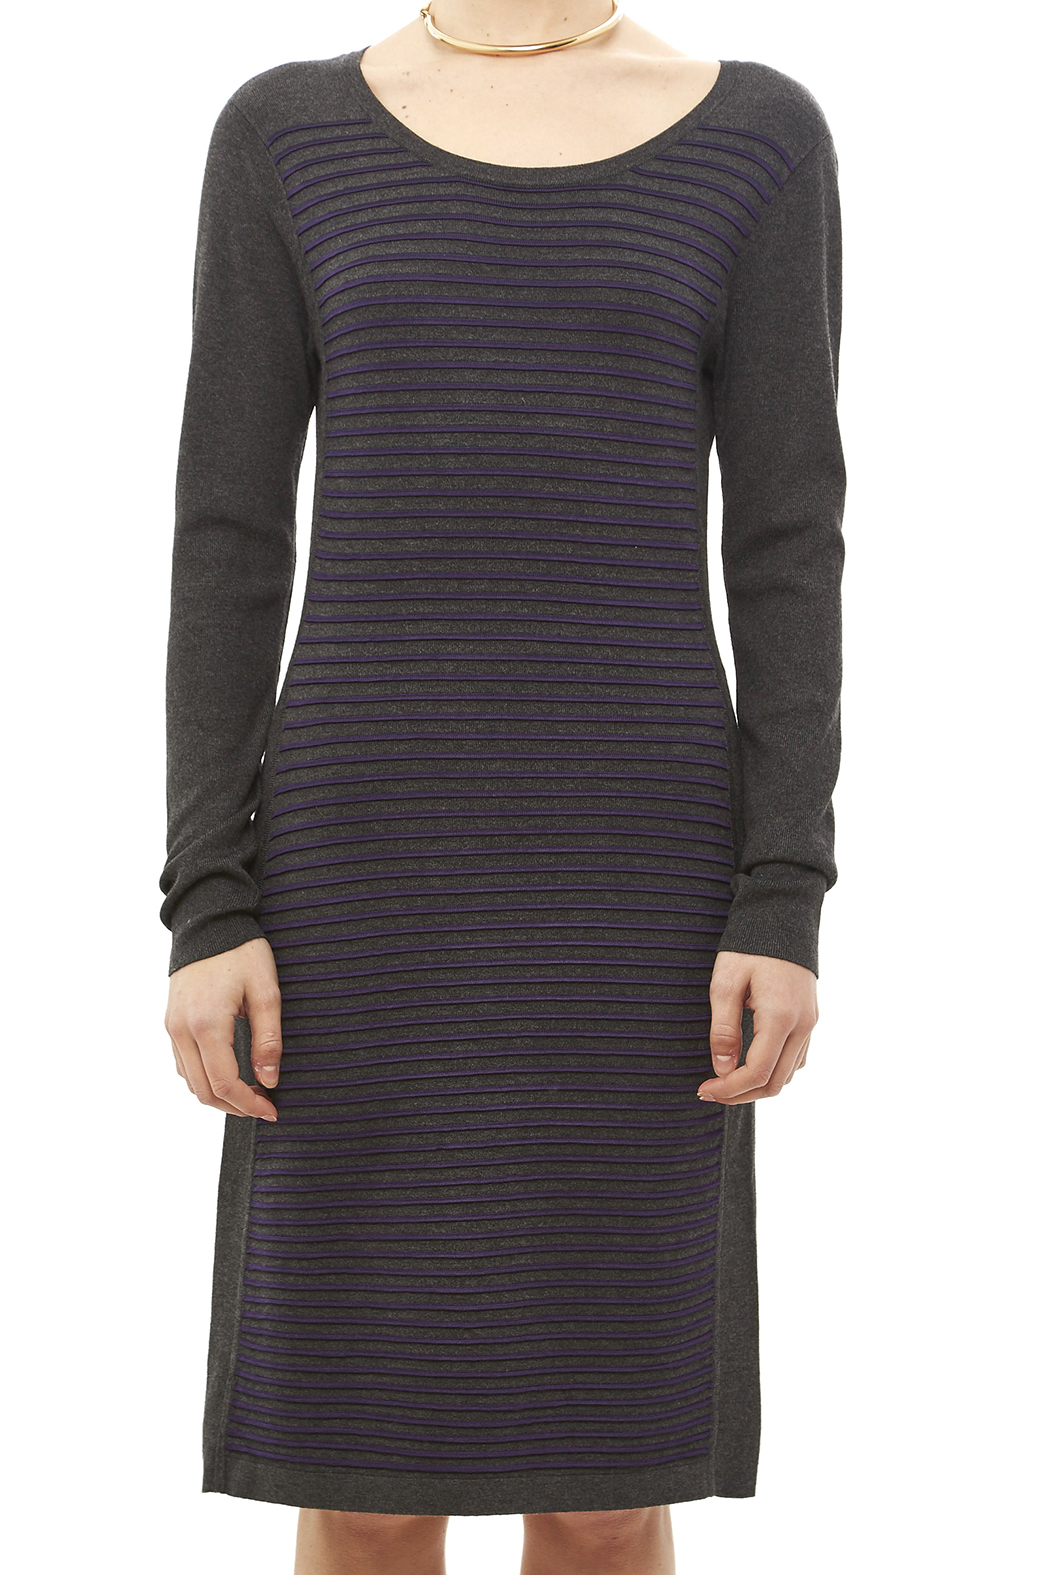 Tribal Gray Stripe Dress - Side Cropped Image